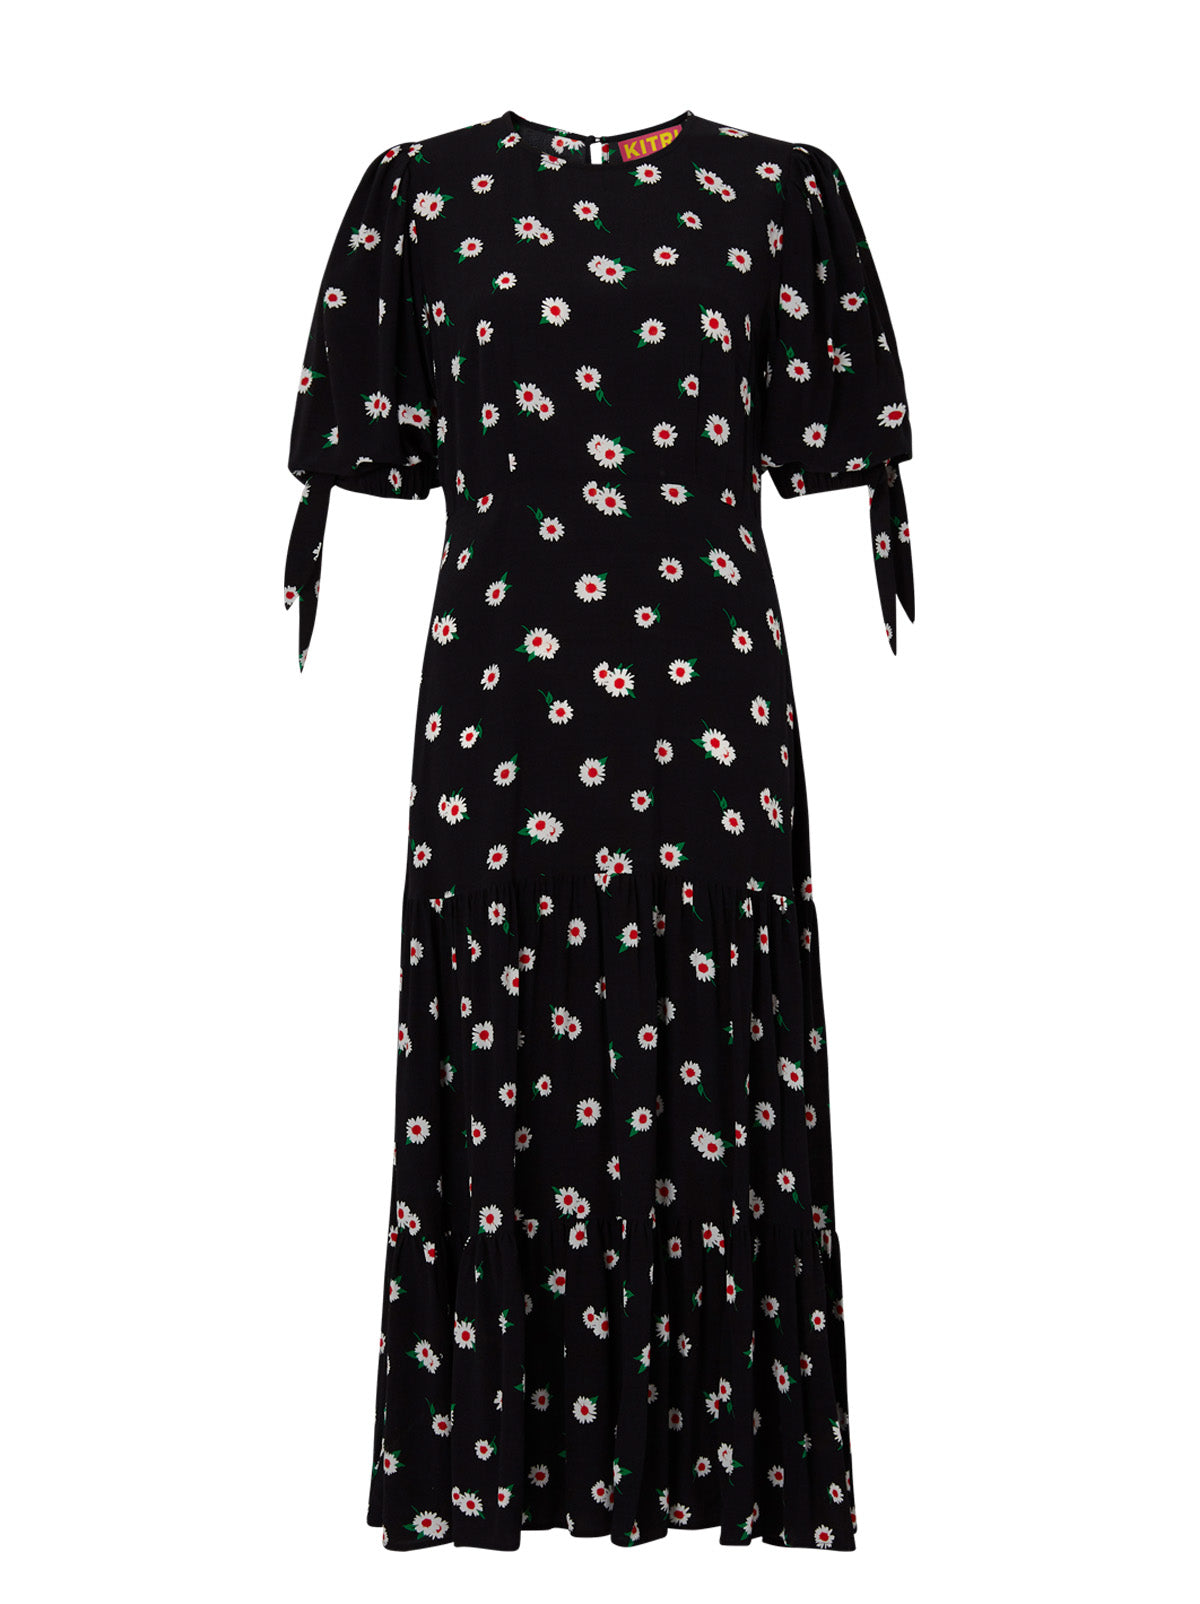 Heather Black Daisy Midi Dress by KITRI Studio